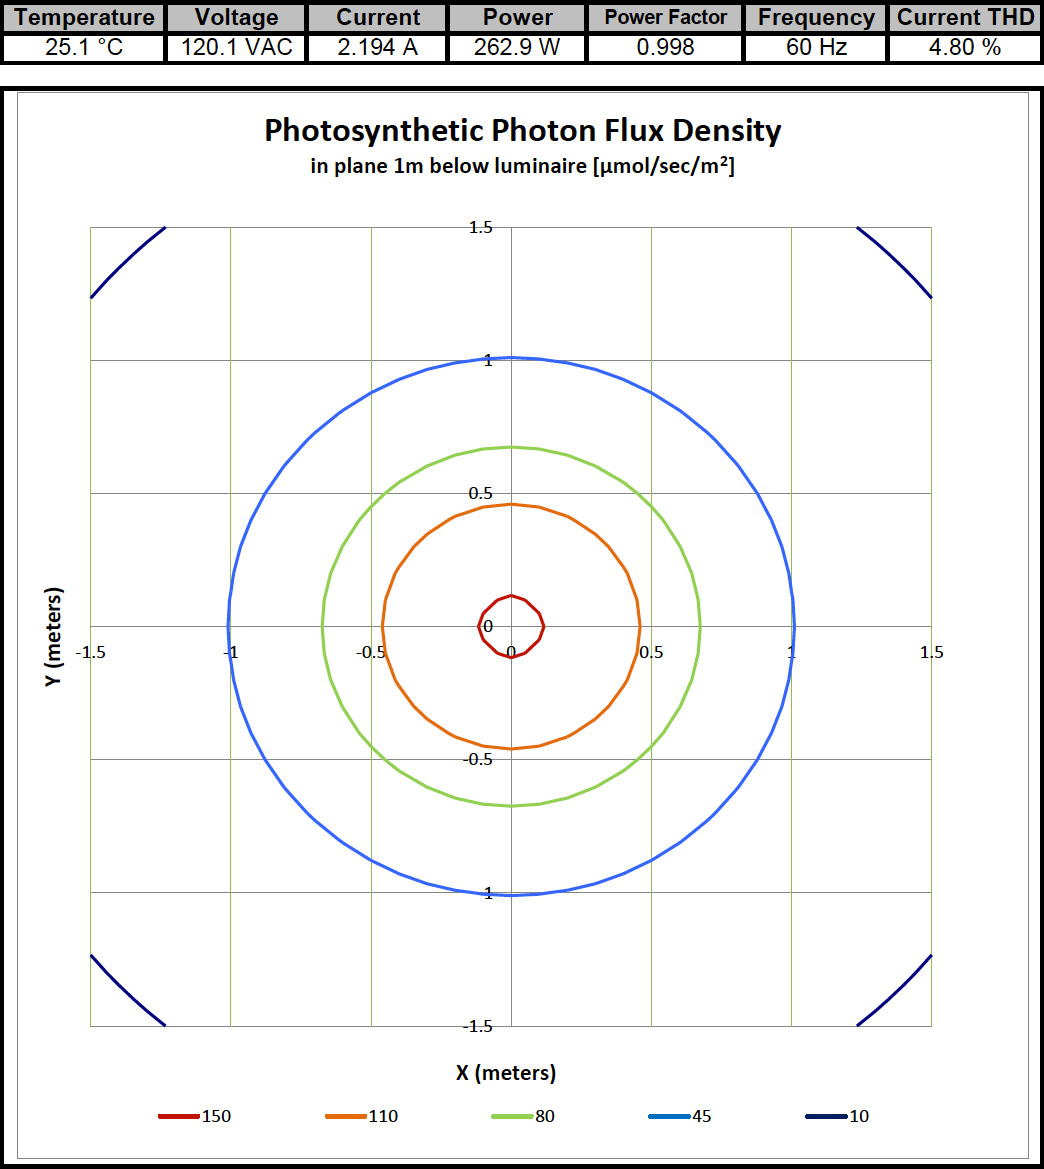 Photosynthetic Photon Flux Density